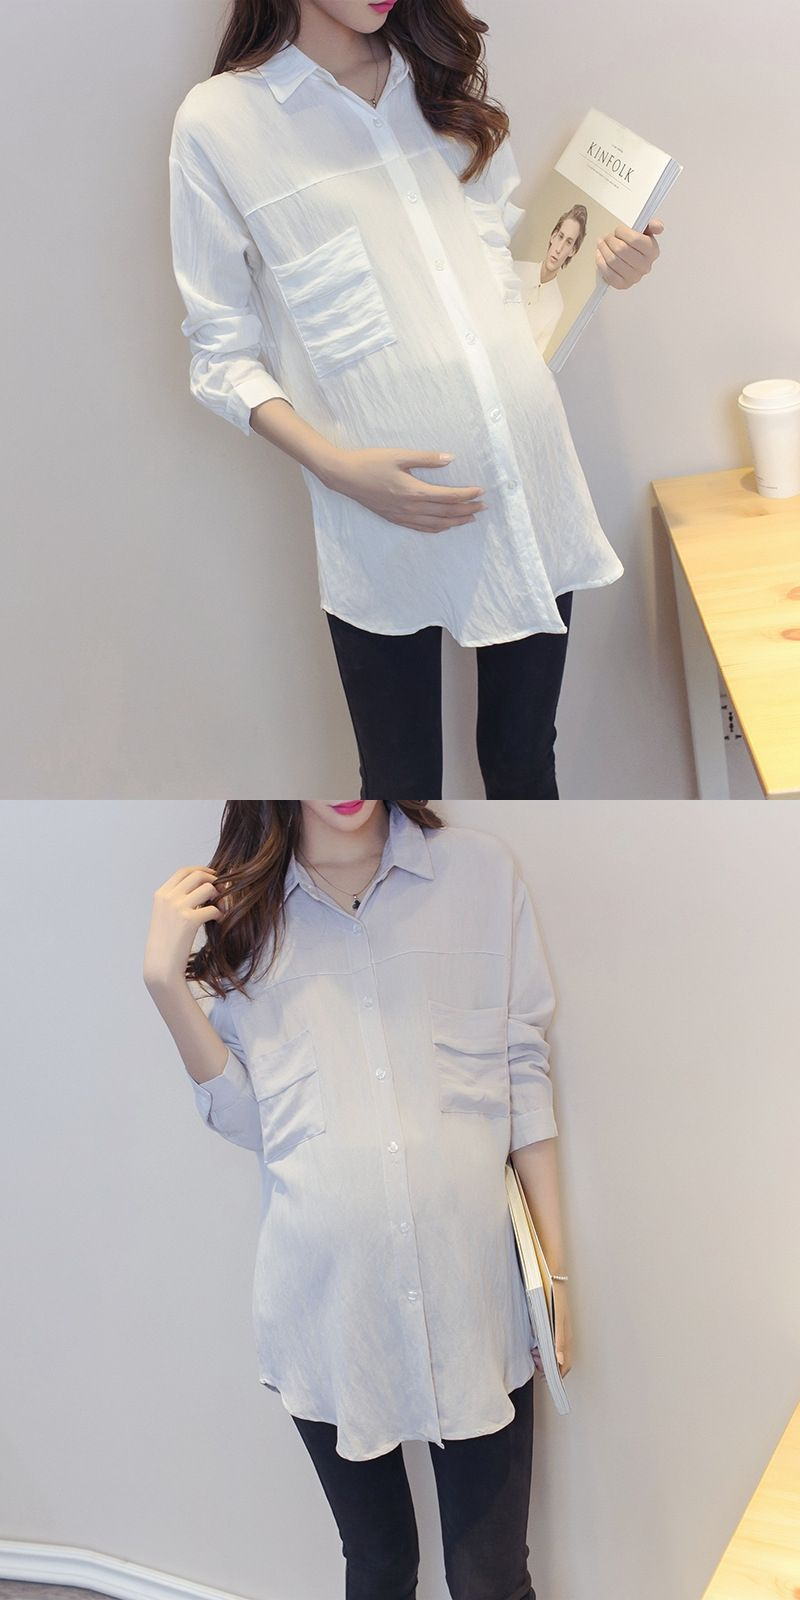 0b20957a87296 Maternity Shirt Korean Blouse Clothes for Pregnant Women Long Sleeve  Maternity Blouses Pregnancy Clothing Y752